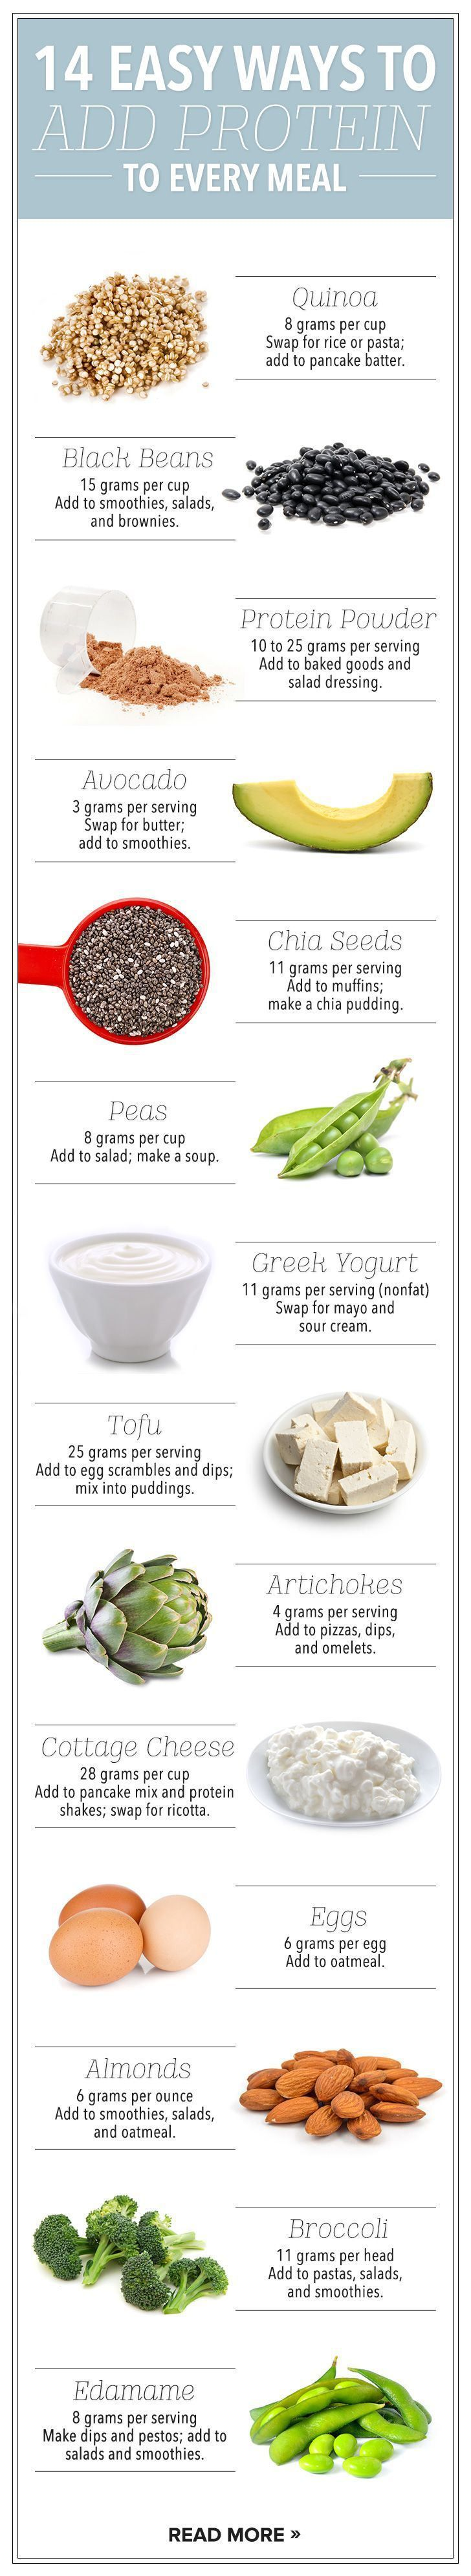 14 Easy Ways To Add Protein To Every Meal